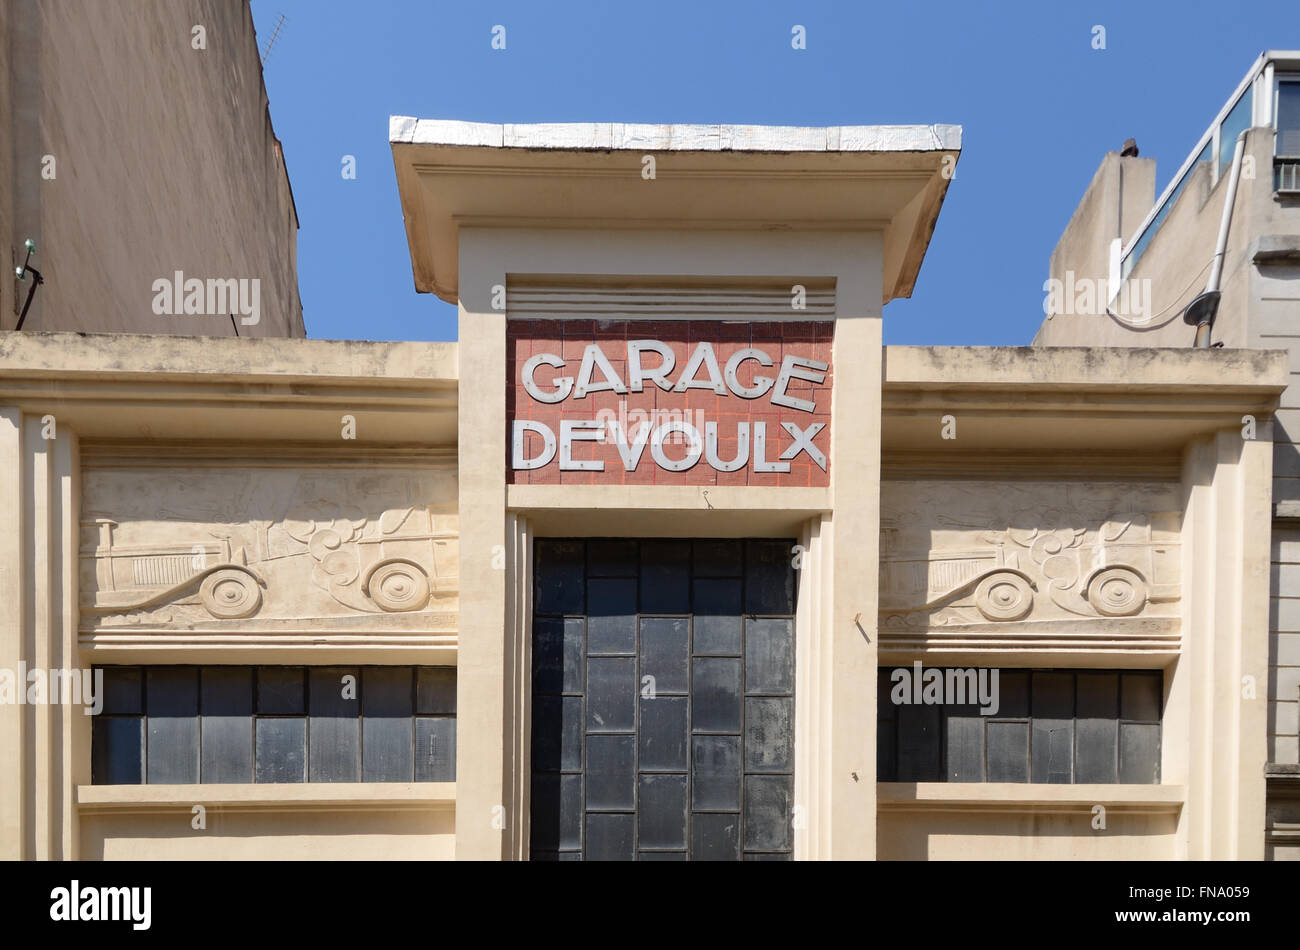 fa ade of 1920s art deco garage devoulx with bas relief or. Black Bedroom Furniture Sets. Home Design Ideas